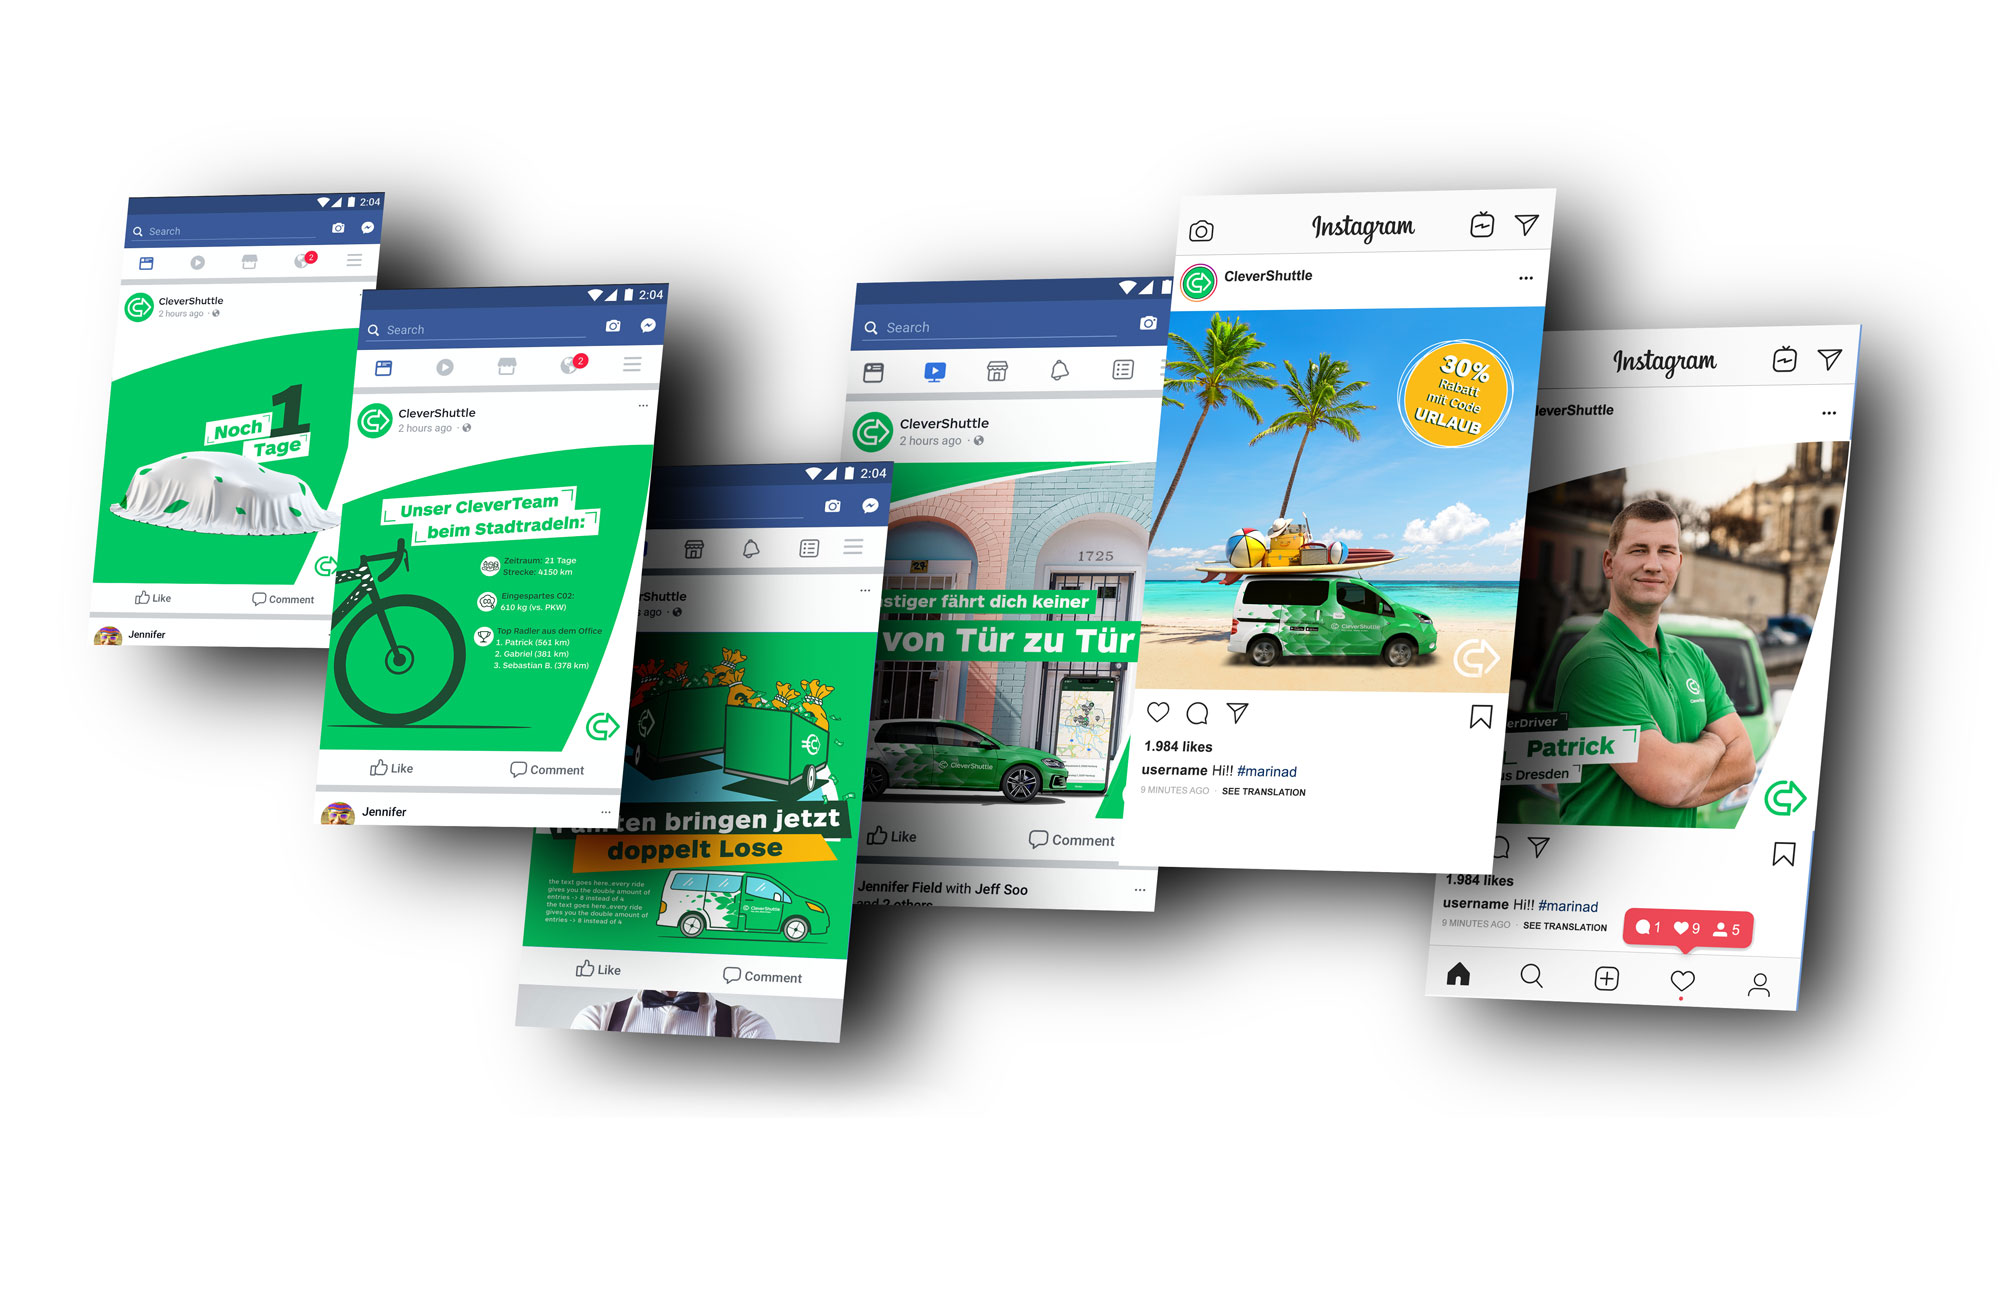 Different ideas for social media adverts.